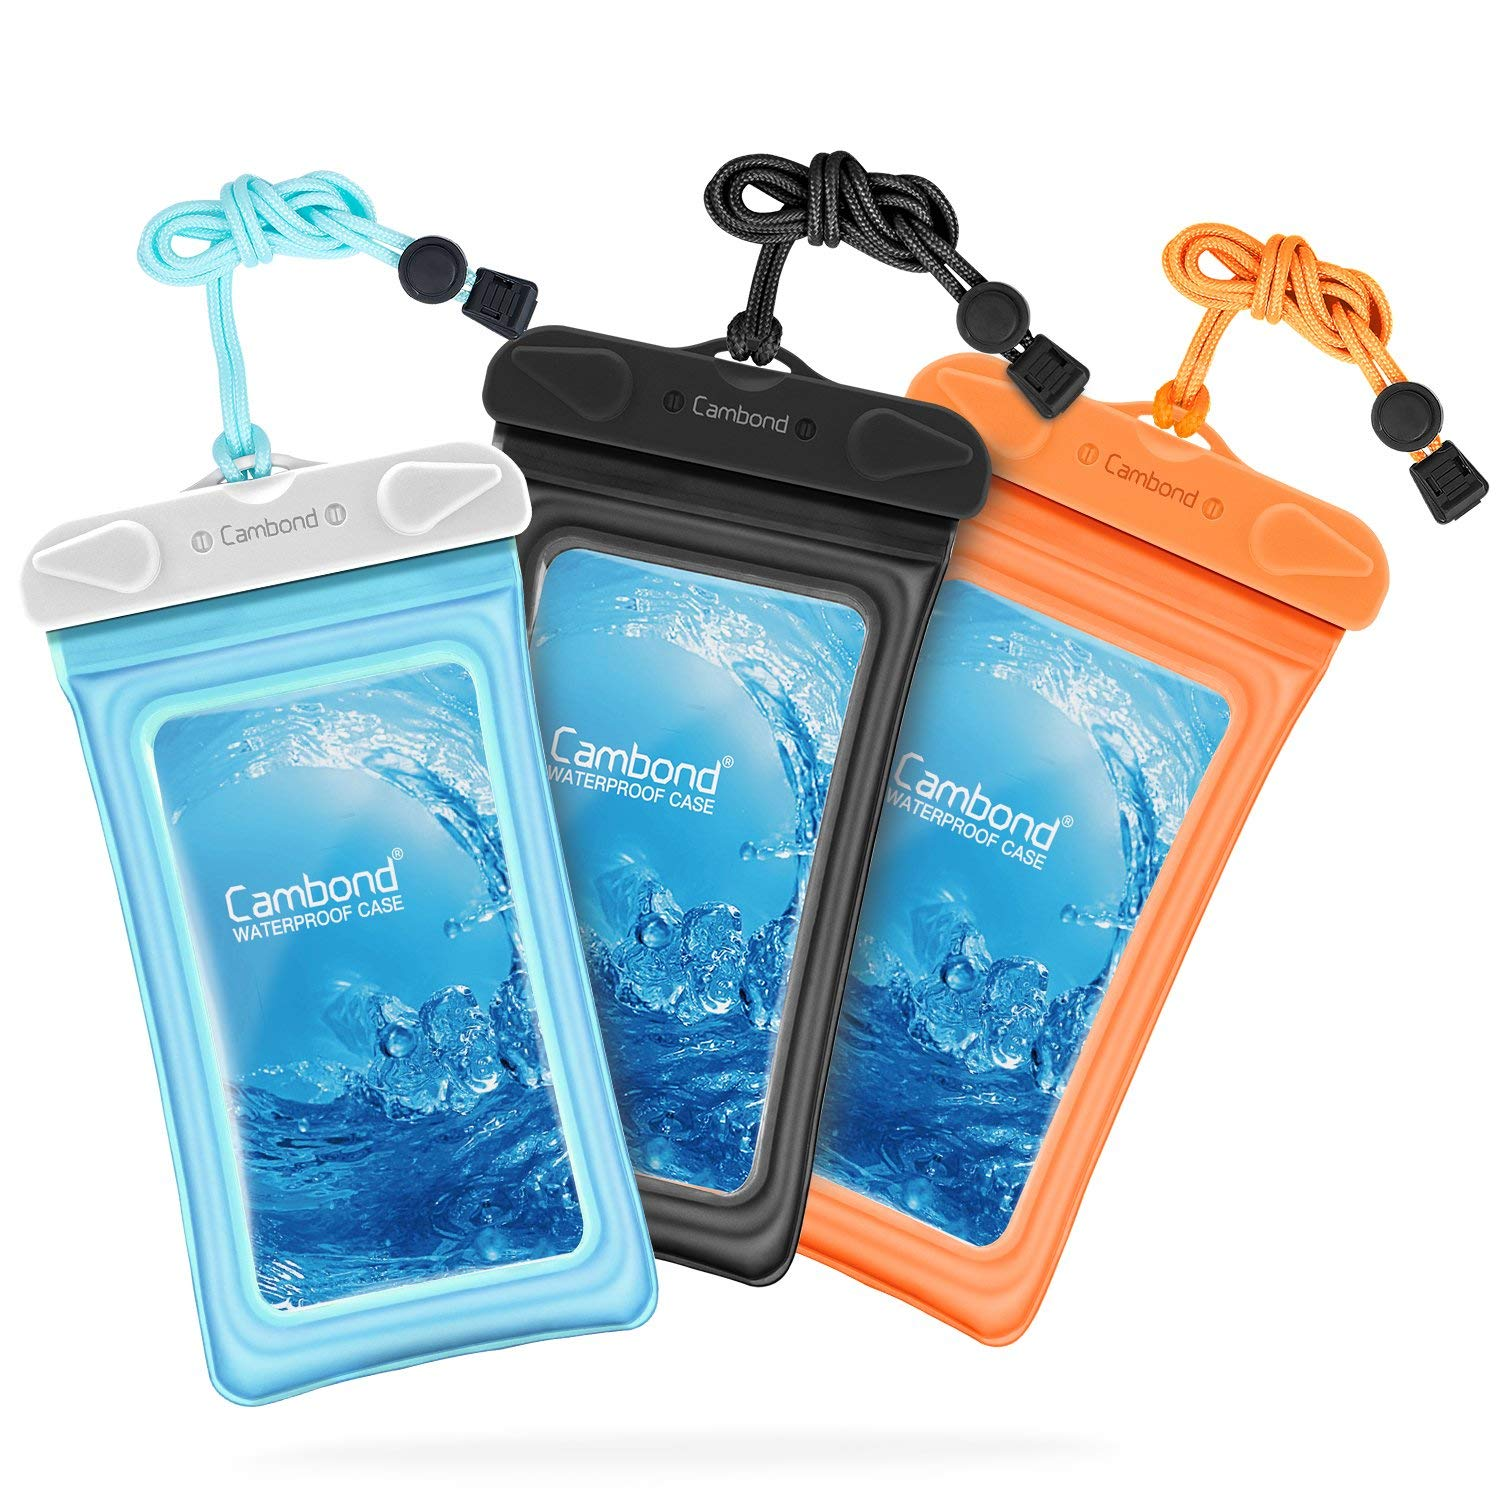 Cambond Waterproof Phone Case, 3 Pack Floating Waterproof Phone Pouch, Transparent TPU Water Proof Cell Phone Pouch Dry Bag with Lanyard (Black/Blue/Orange, 3 Pack)